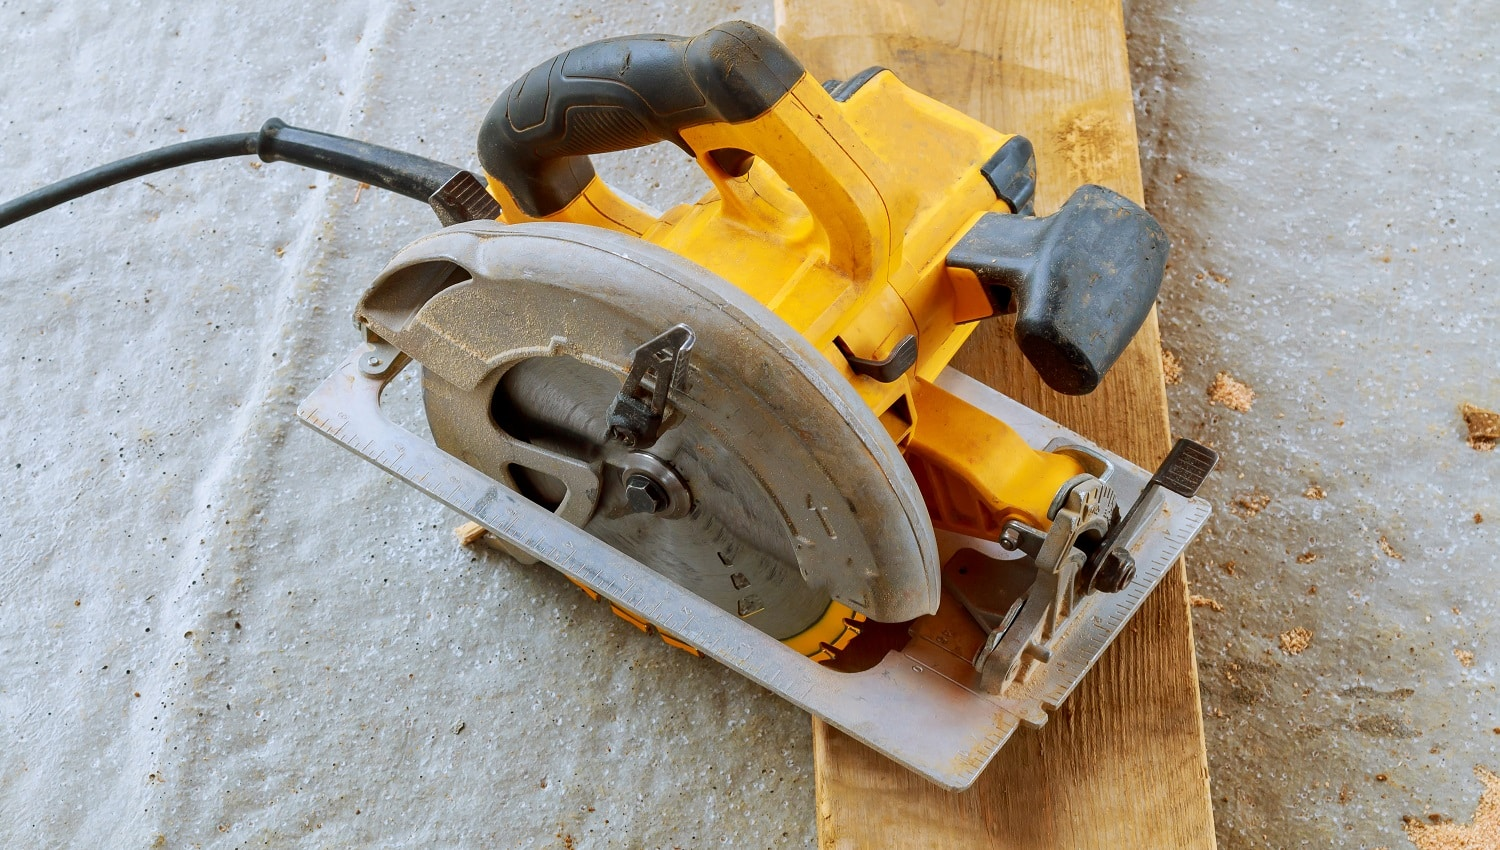 Close up electric circular saw cutting wood Wood cutting with circular saw